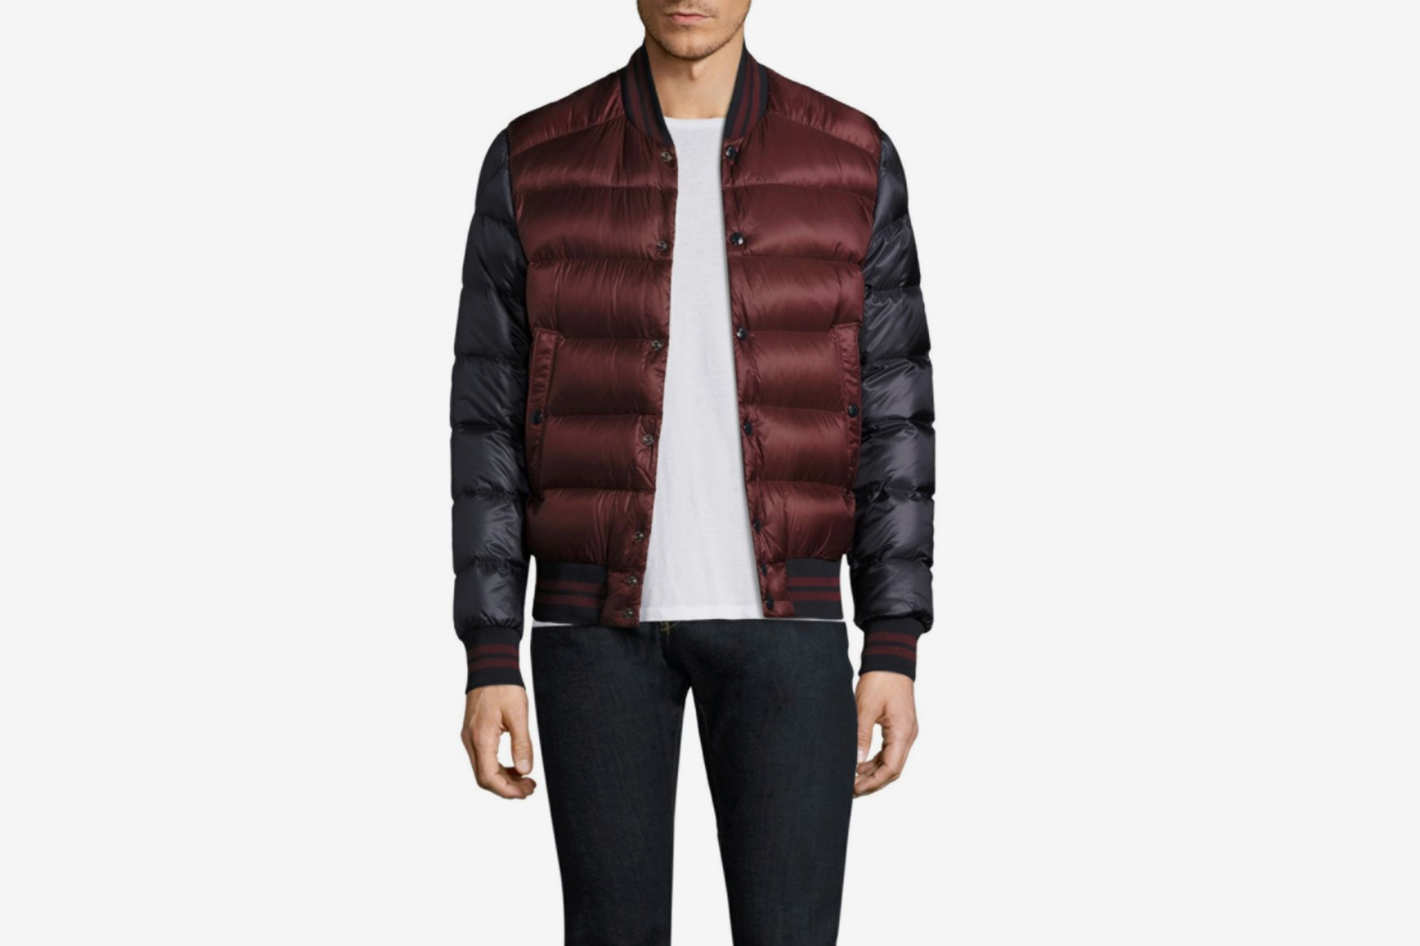 Moncler Bradford Two-Tone Finished Puffer Jacket